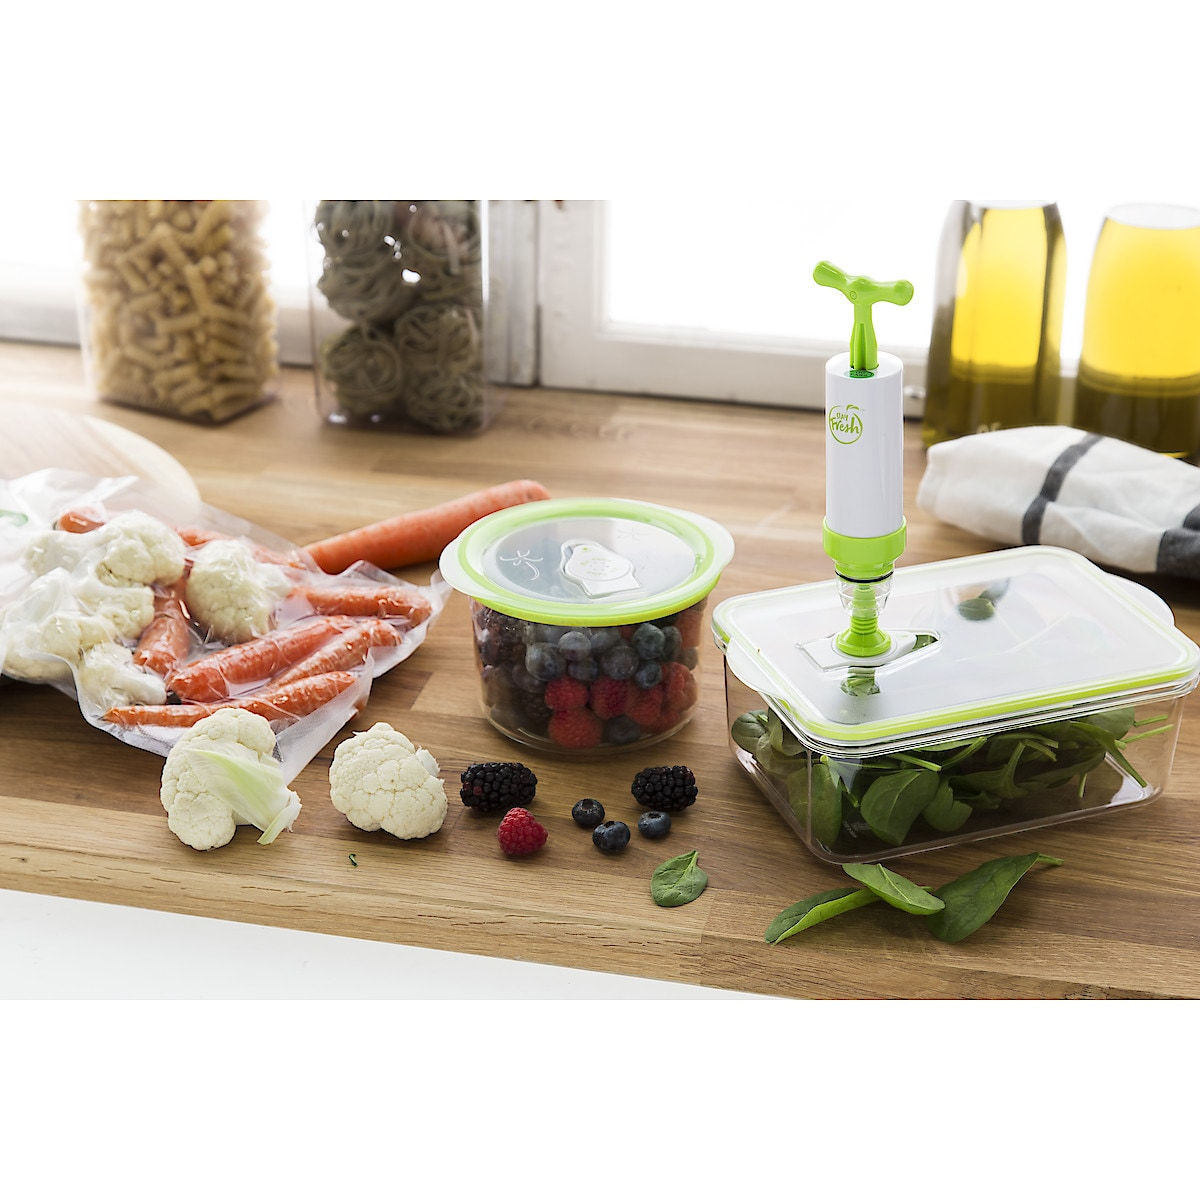 Vakuumierer Stay Fresh Vacuum Sealer Kit